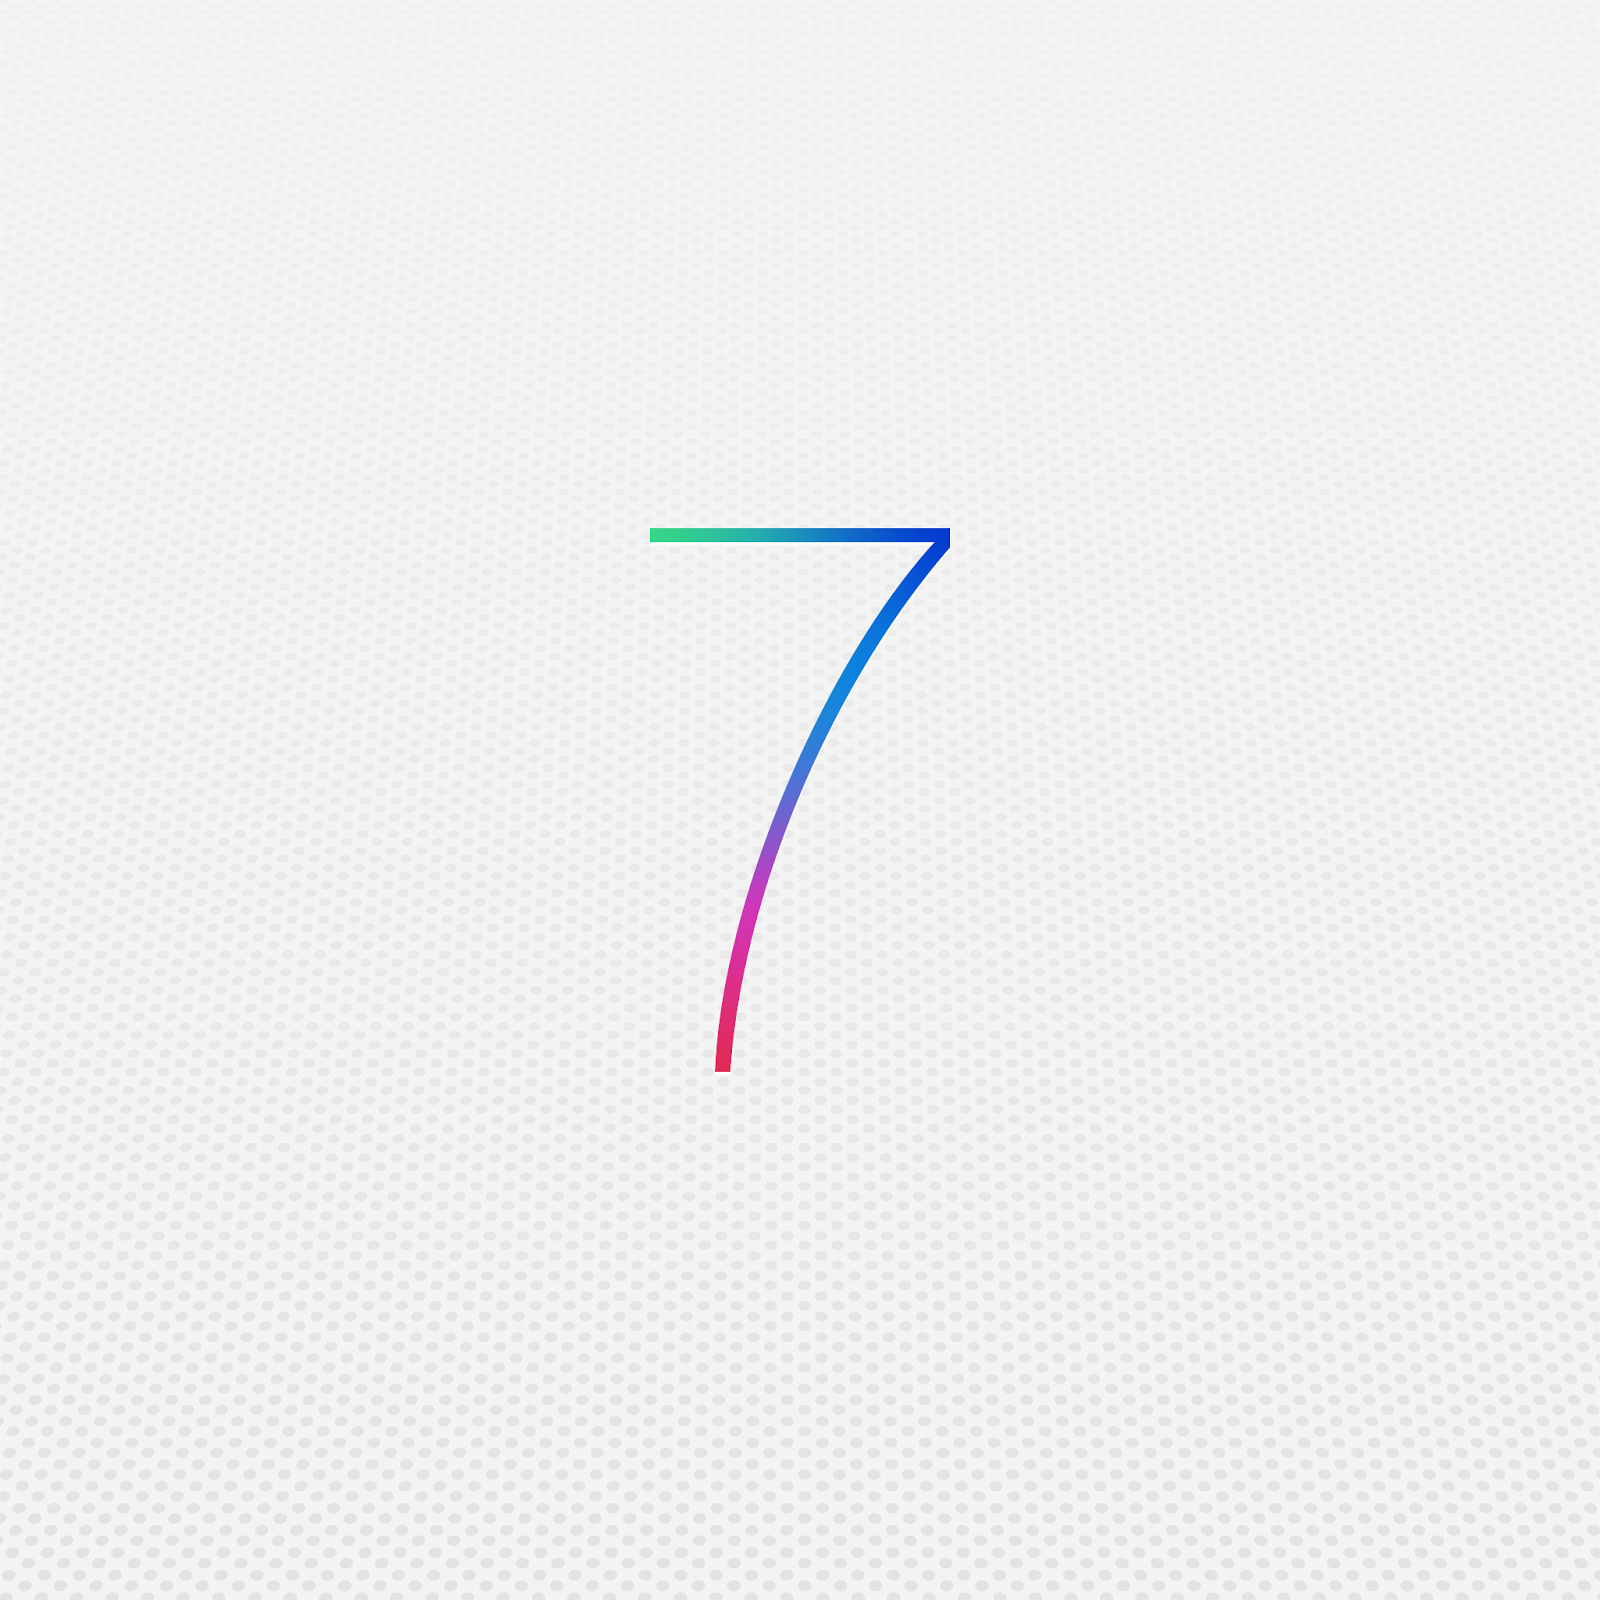 Iphone Wallpaper Enlarges: Radio Pr: IOS 7 Wallpapers For Your IOS Device